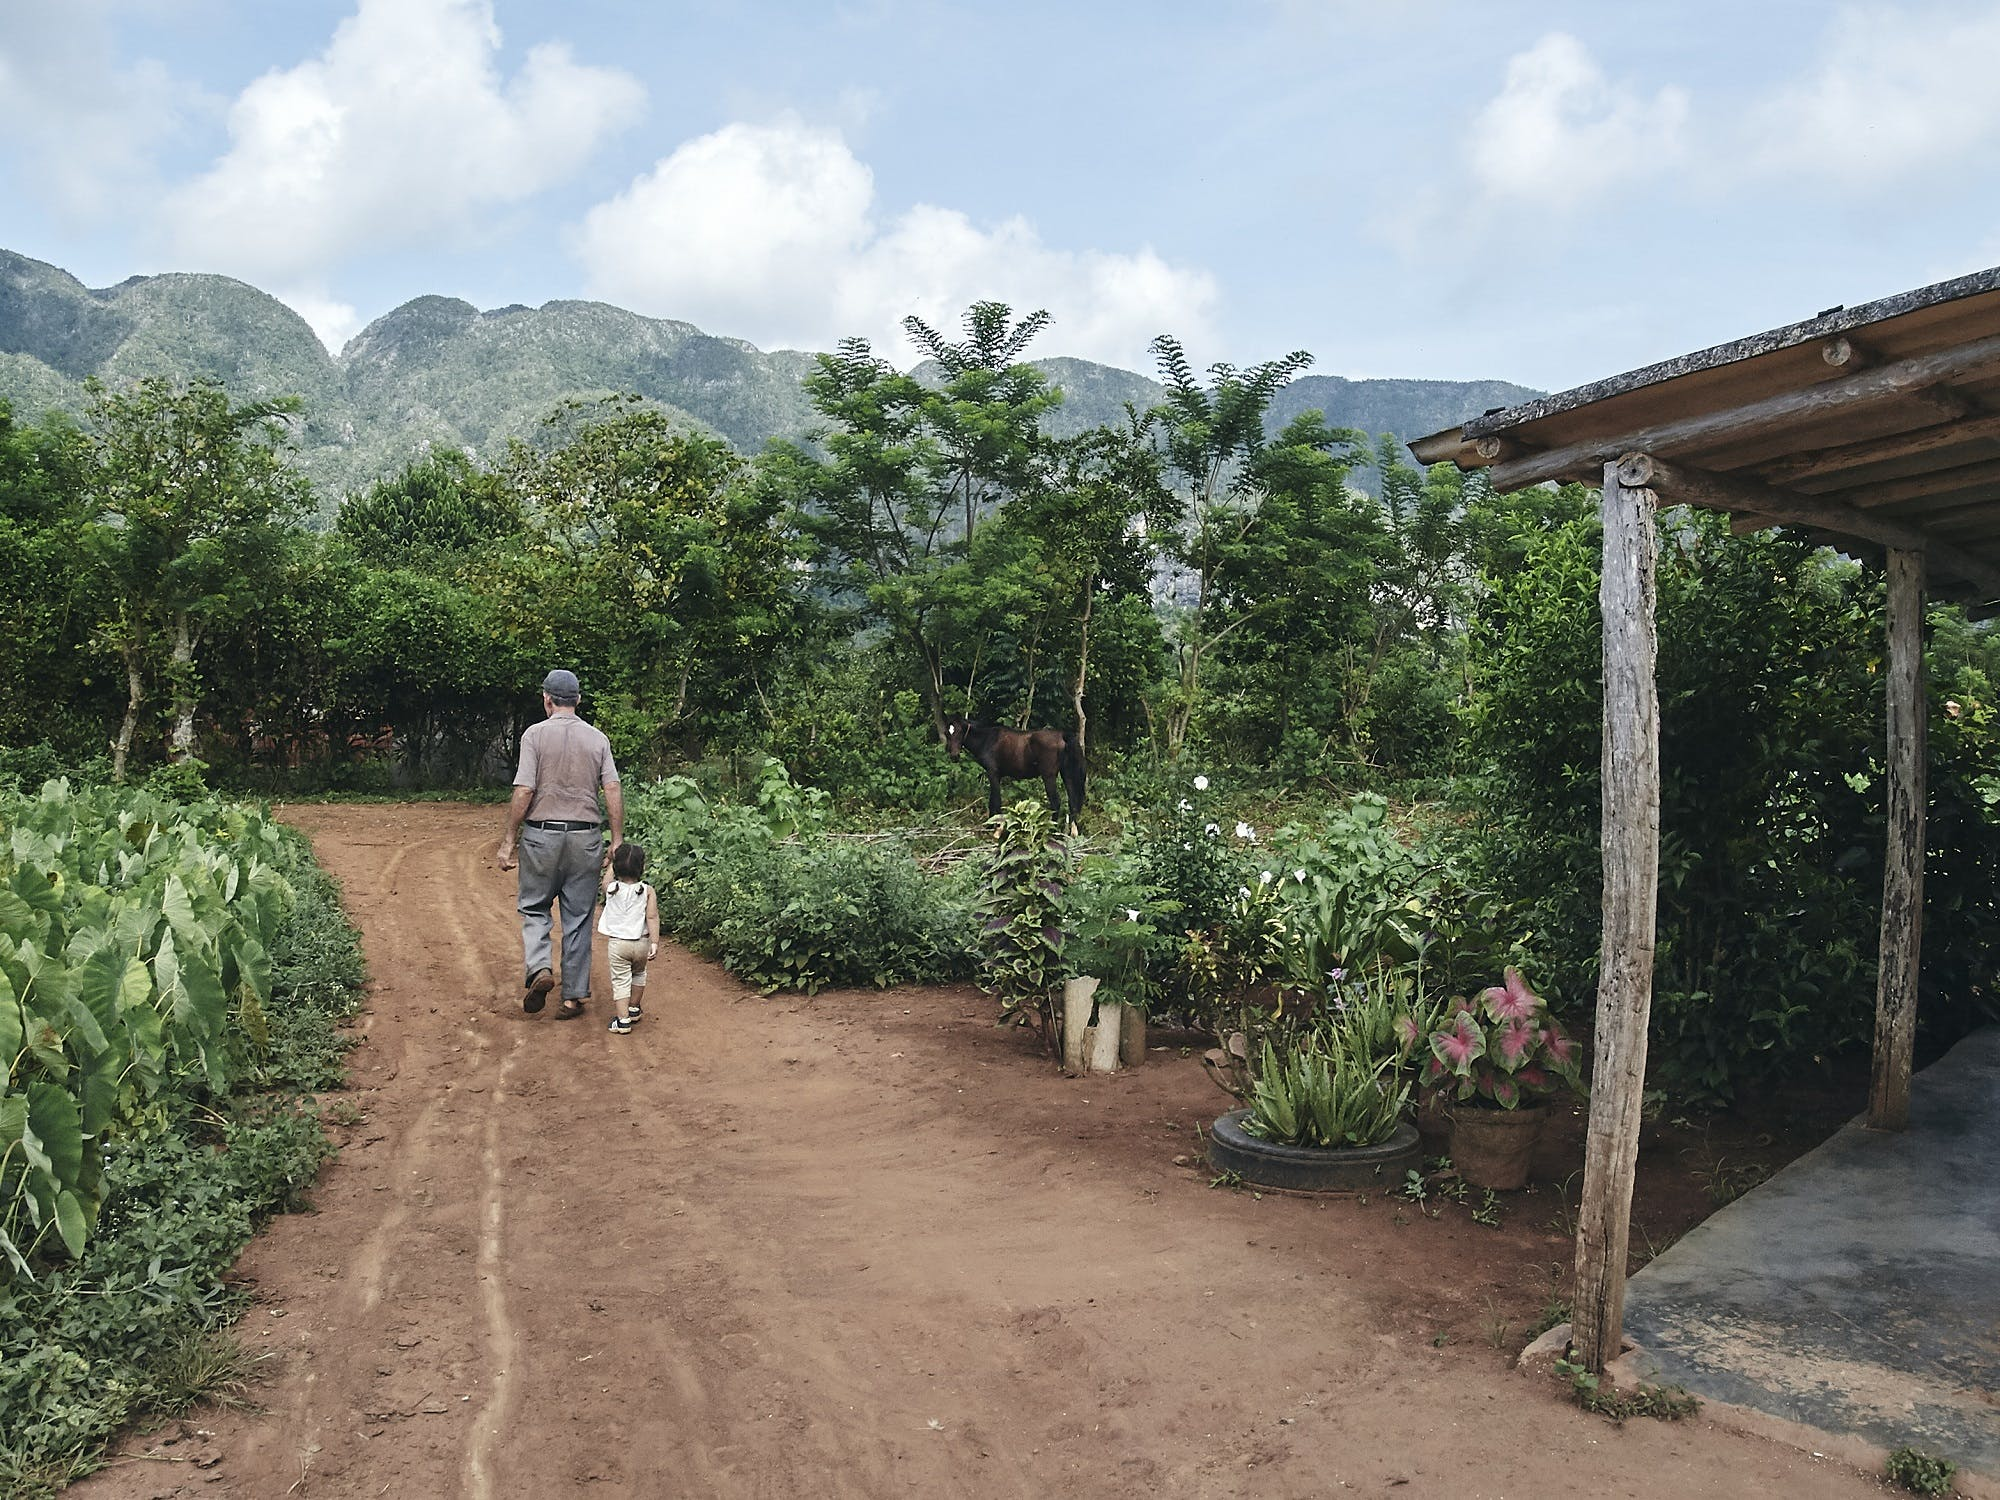 Step back in time on a Valle de Viñales tour.